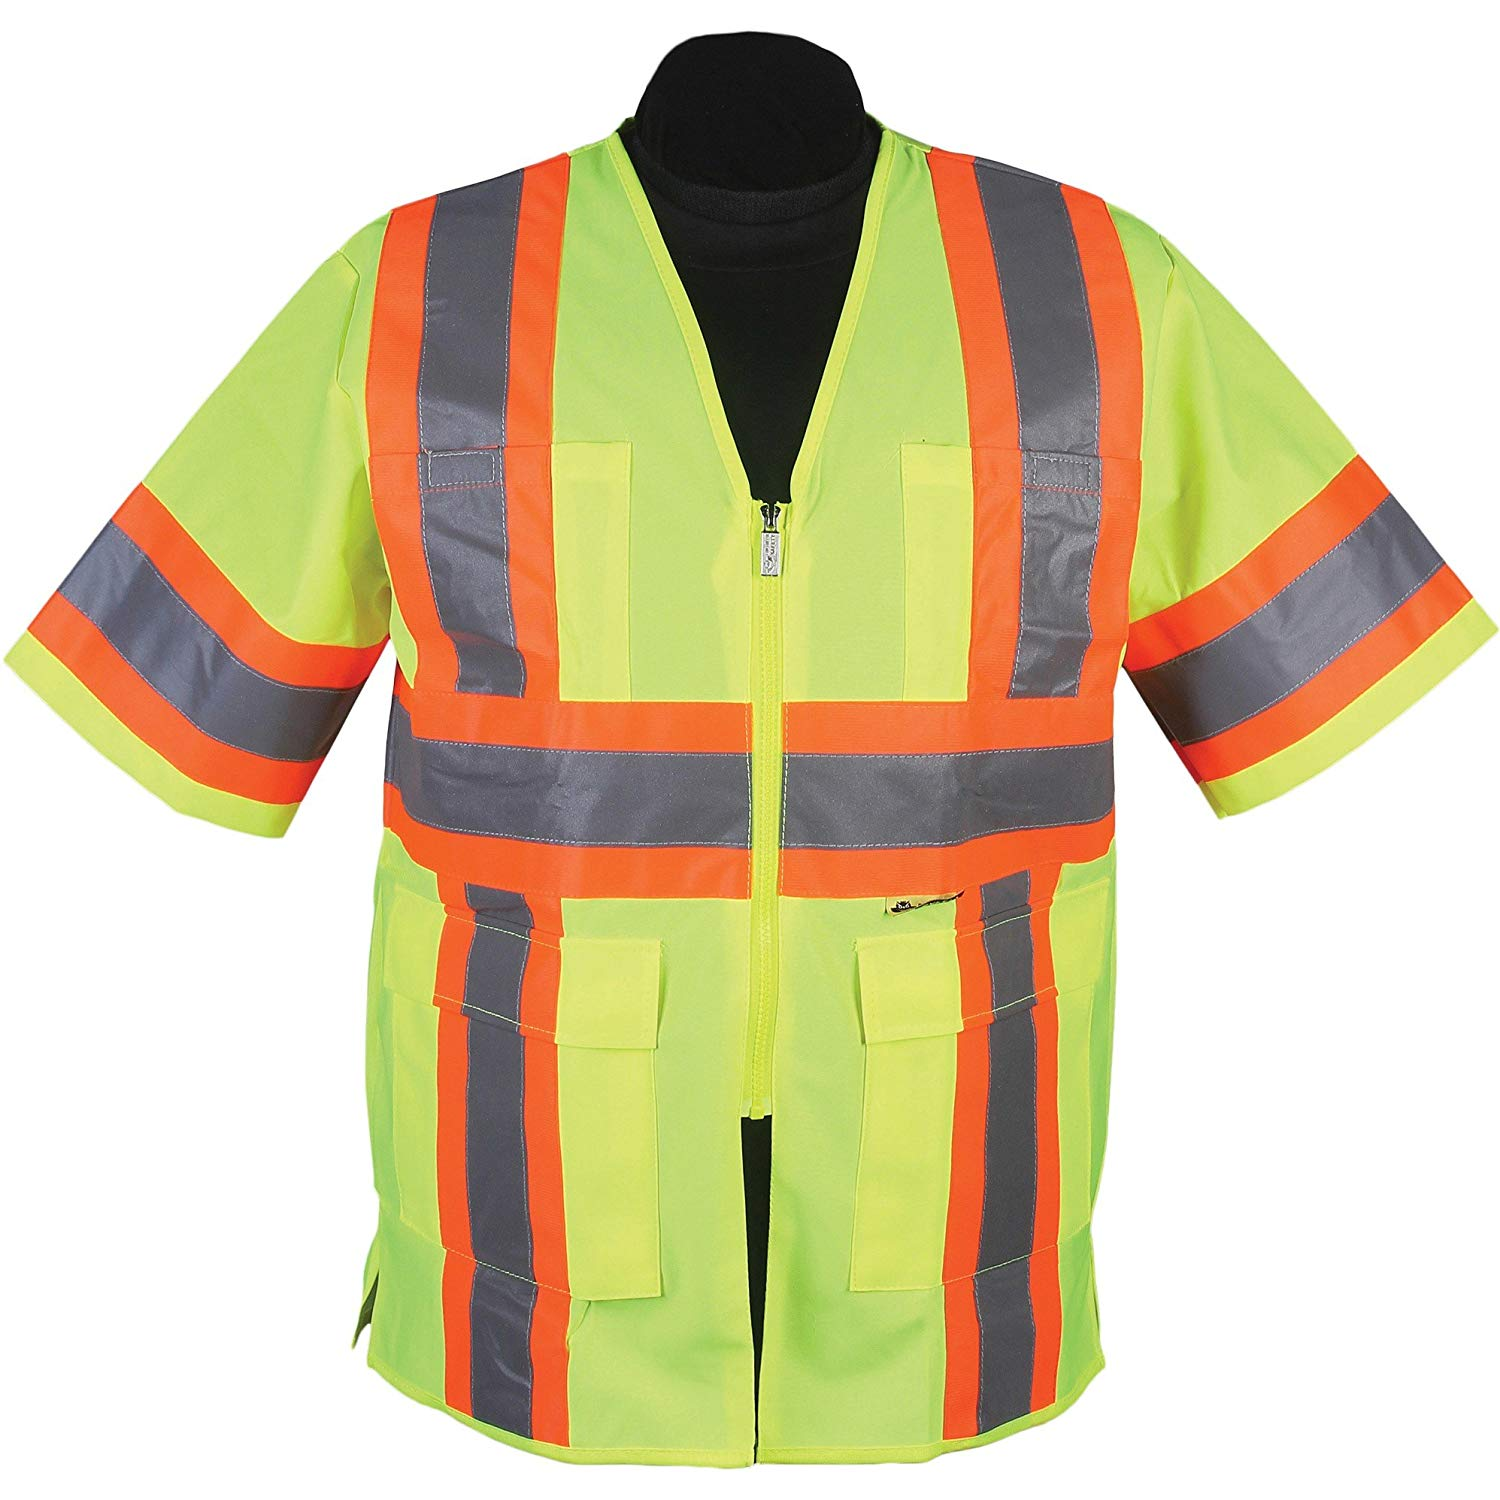 Brite Safety Hi Vis Safety Vest | Zipper Front Closure | Contrasting Tape | 6 pockets | ANSI Class 3 Compliant